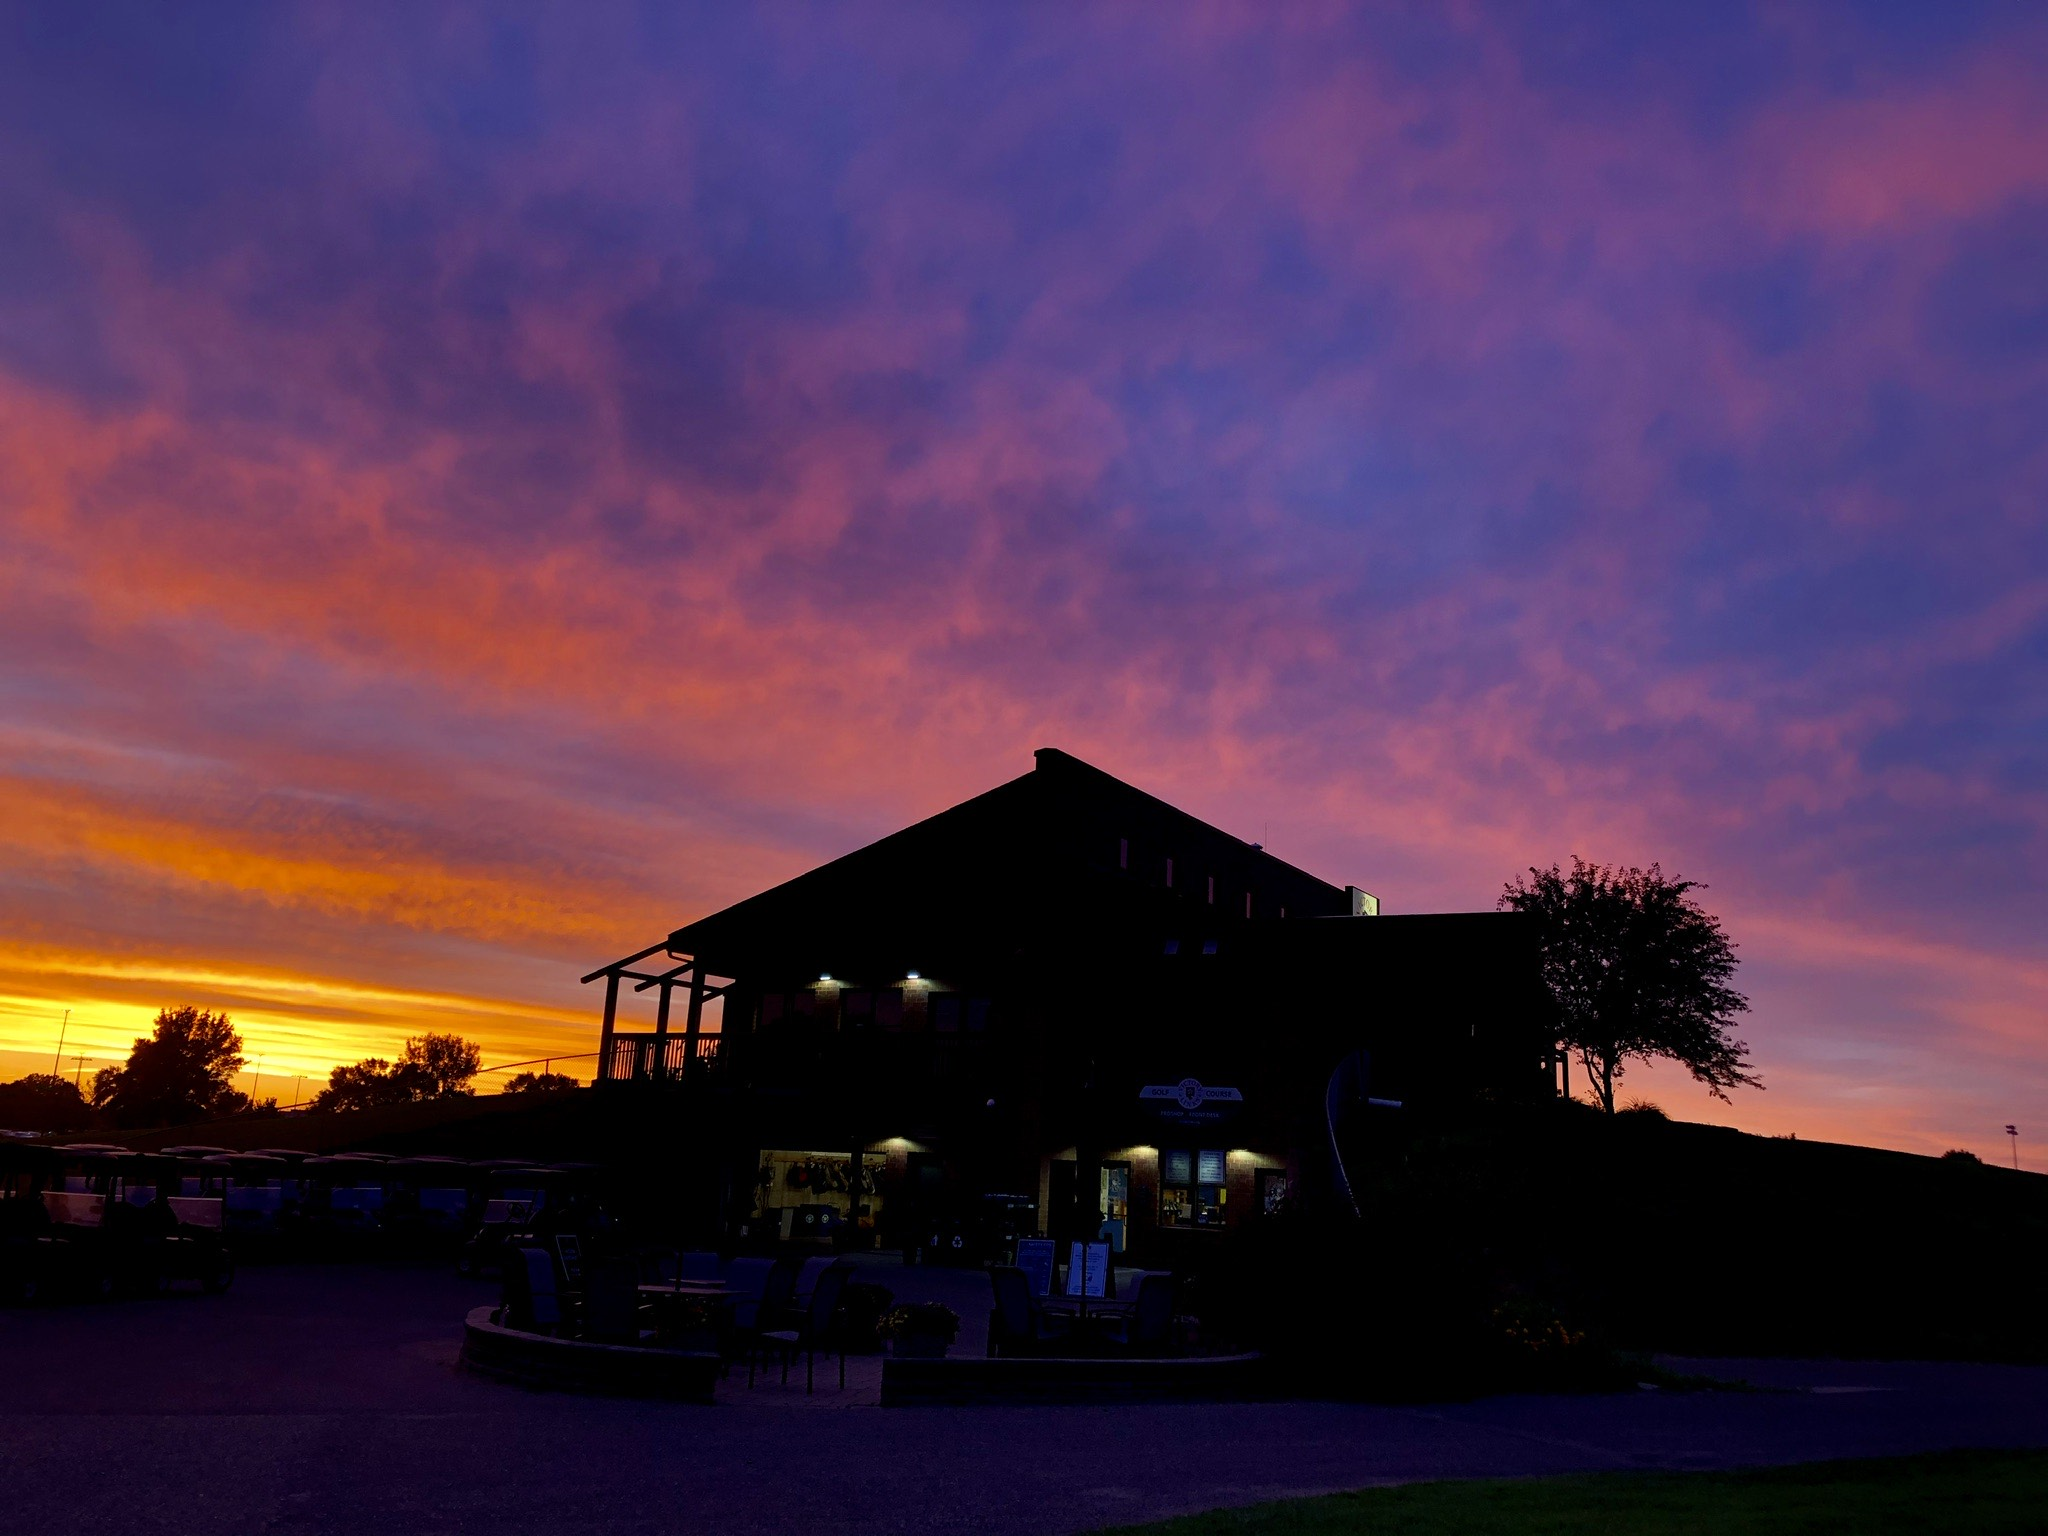 Shades of purple, pink and yellow filled the sky above the Victory Links Clubhouse. The colors created a memorable sunset.